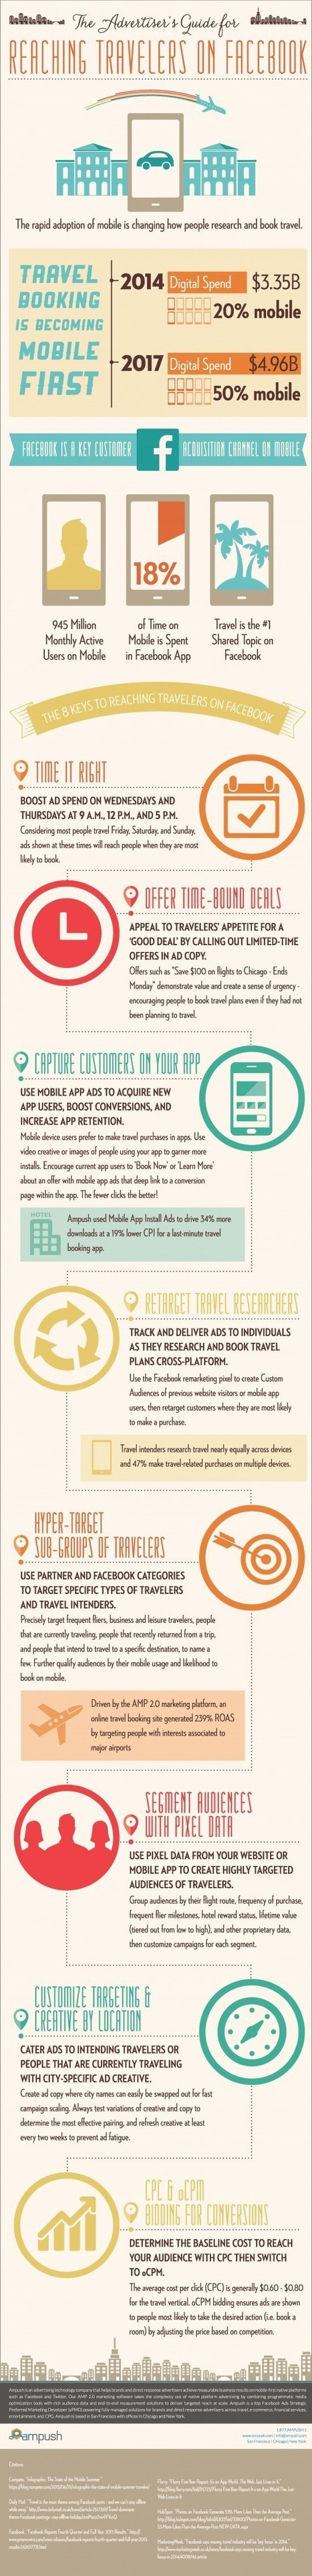 How to reach travelers on Facebook [INFOGRAPHIC] | digital hospitality | Scoop.it